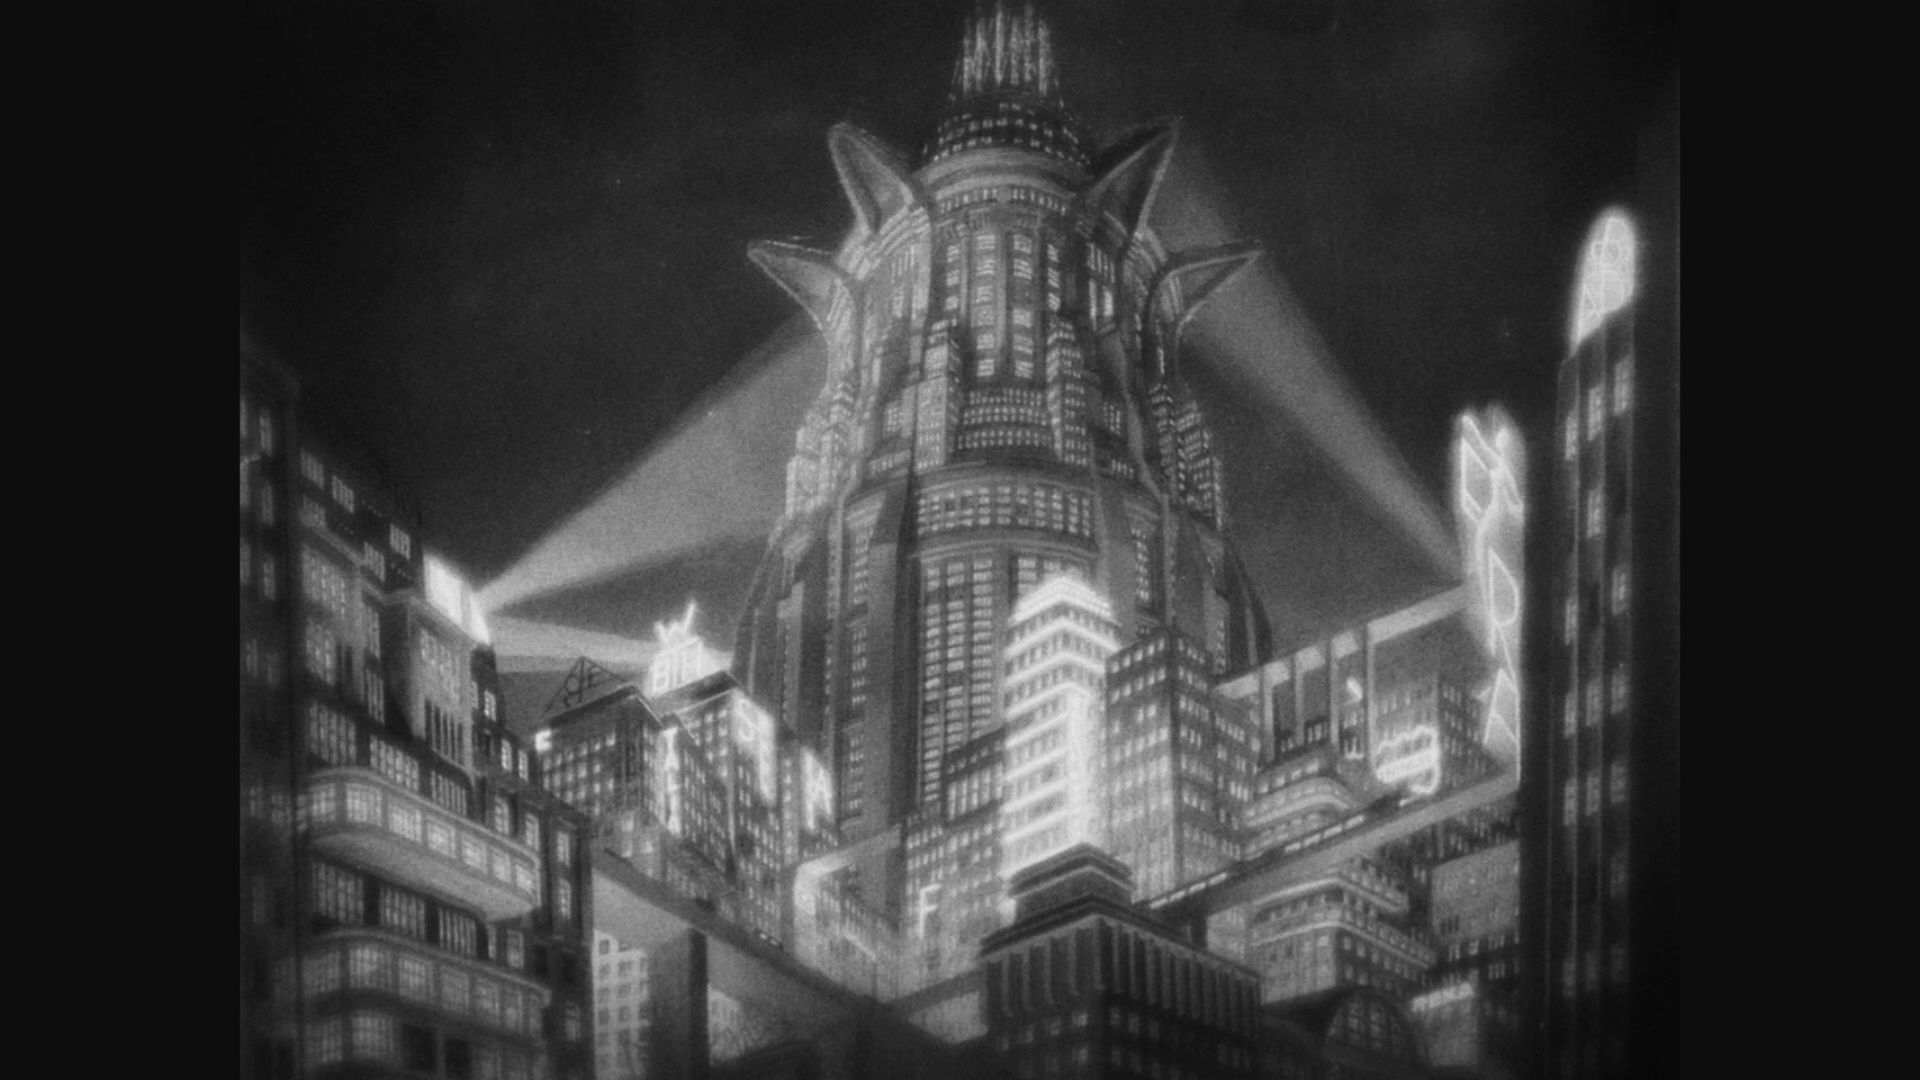 https://i0.wp.com/www.dvdbeaver.com/film3/blu-ray_reviews52/metropolis_blu-ray_/large2/large_metropolis_MoC_blu-ray_met.jpg